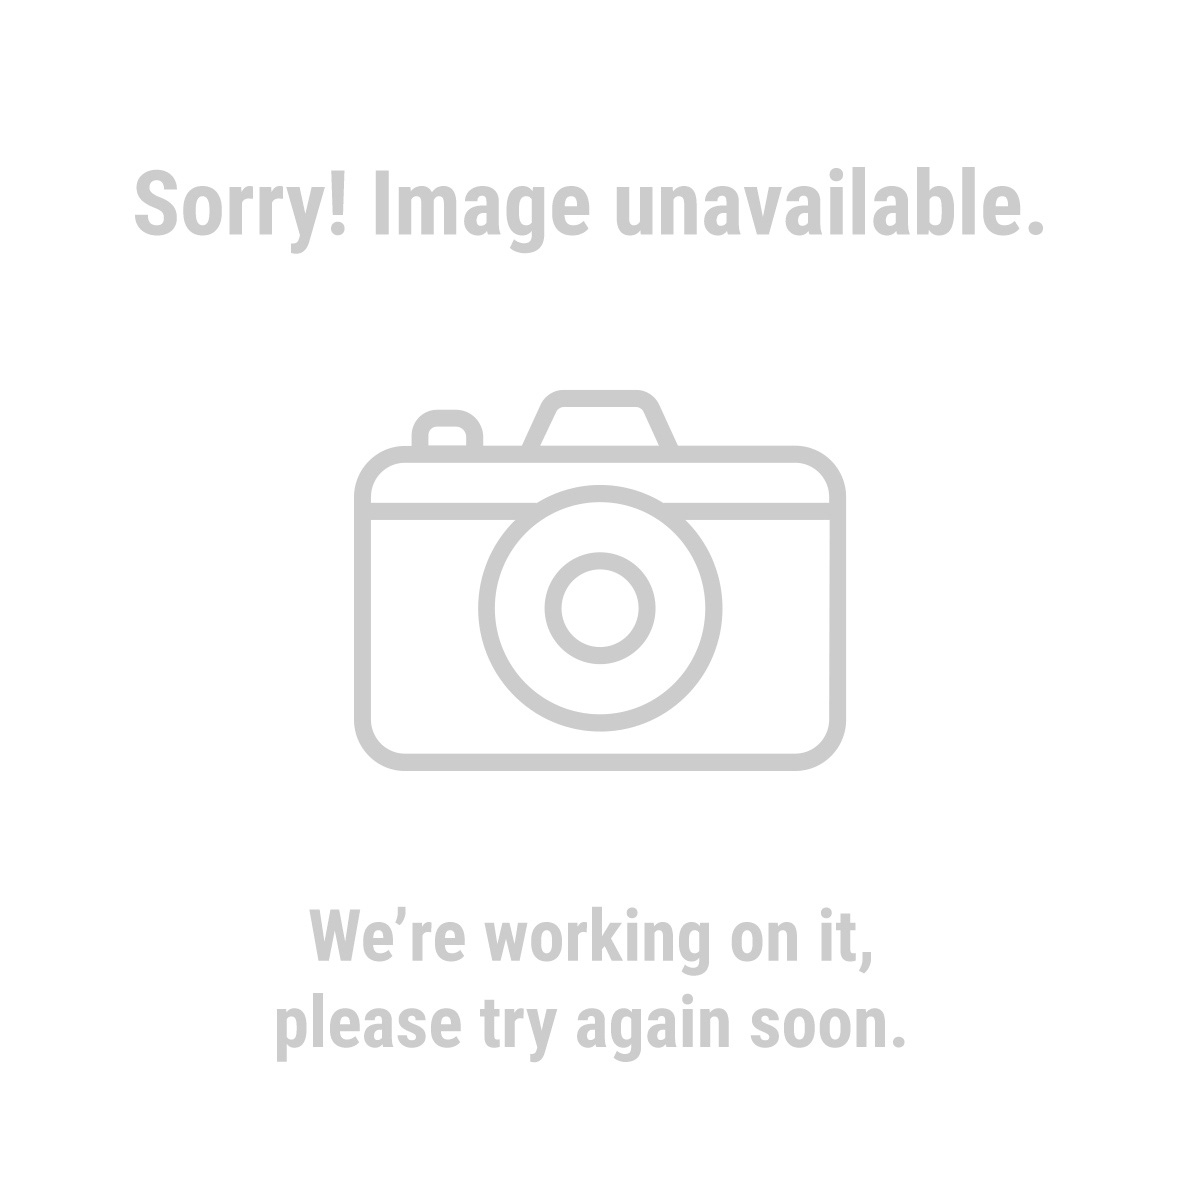 Chicago Electric Welding 60790 100 lb. Capacity Welding Cart